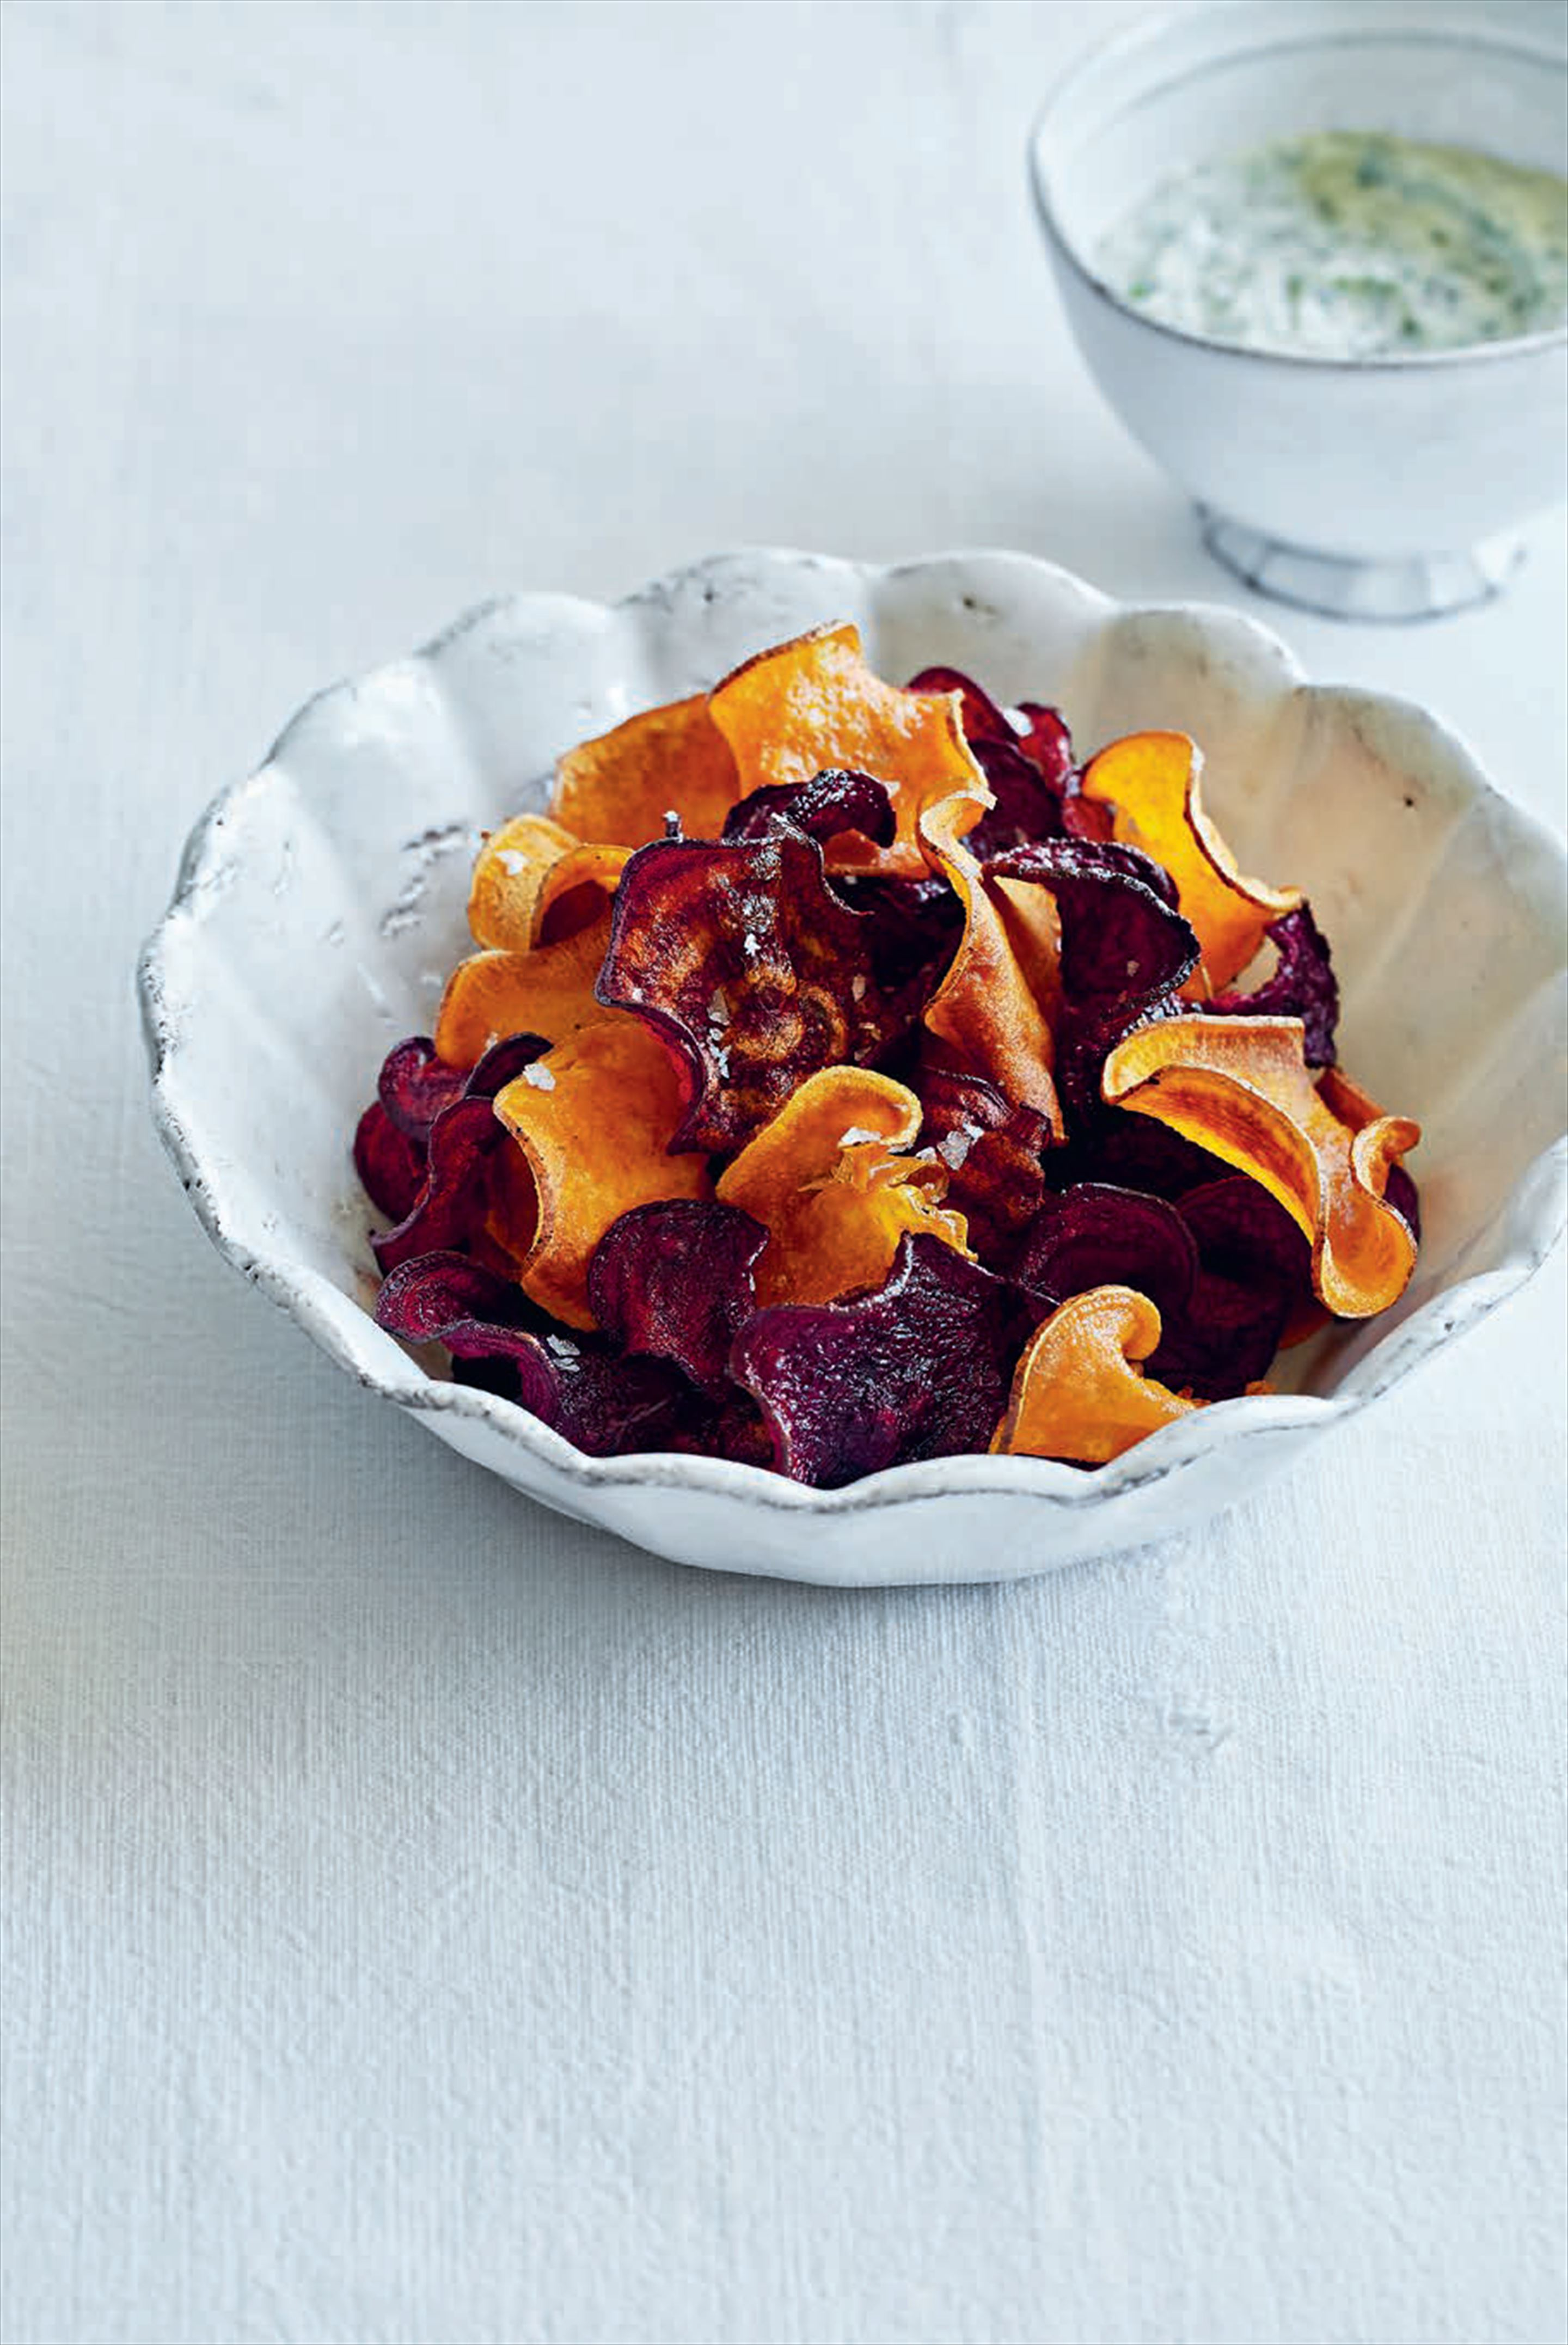 Beetroot & sweet potato crisps with coriander mayonnaise